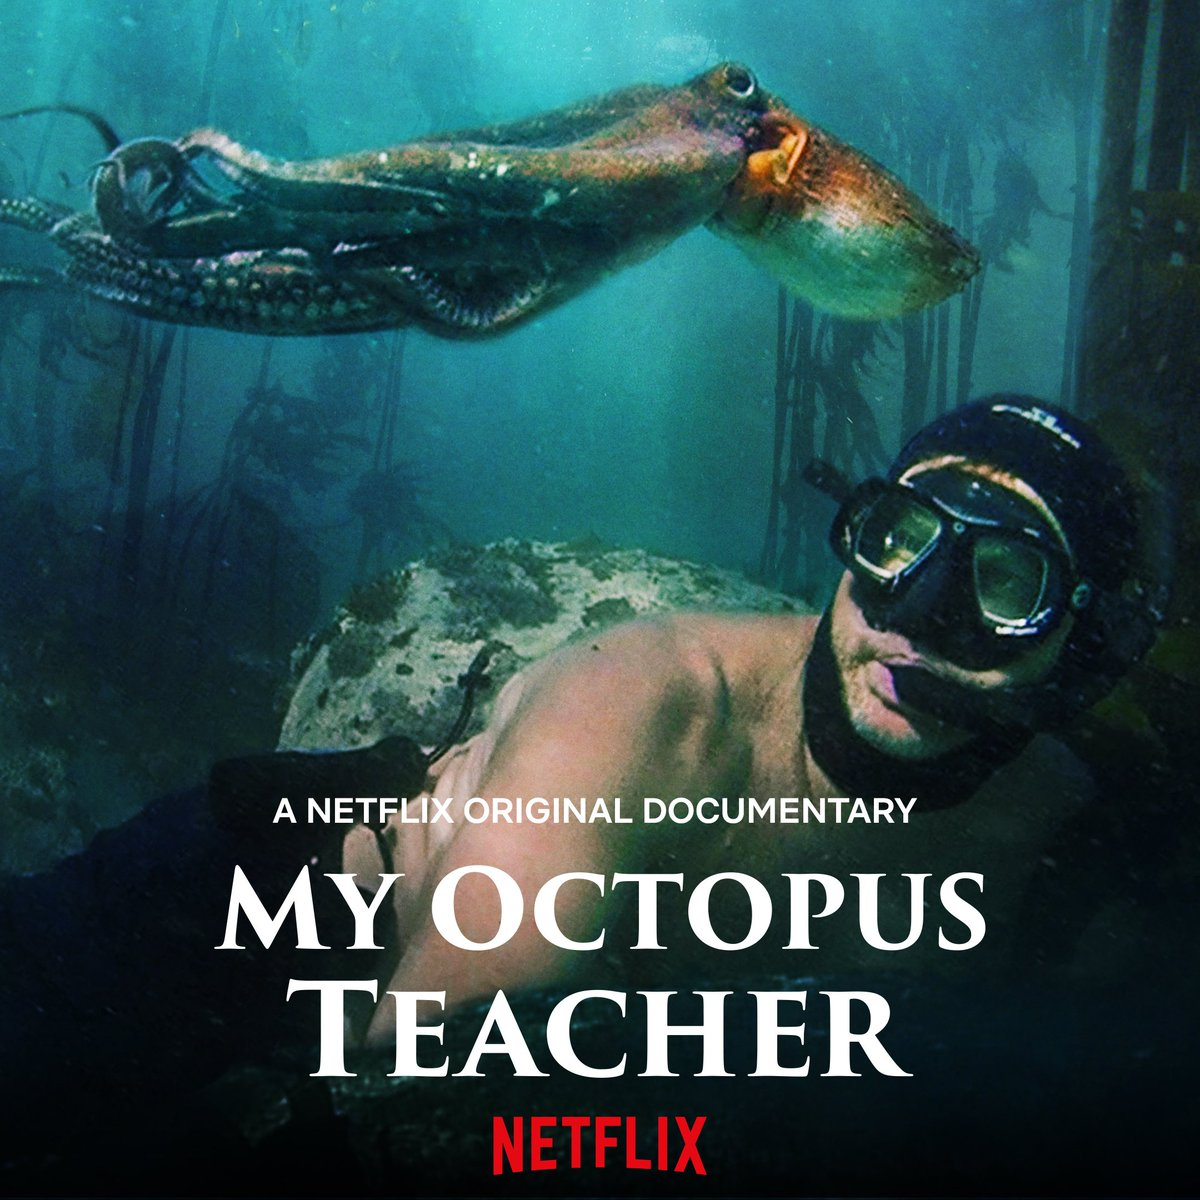 """Well, I watched """"My Octopus Teacher"""" on netflix: a flawed but moving documentary about a straight man who has a lifechanging erotic relationship with a female octopus. I cried, then read out loud to my friends the entirety of @amiasrinivasan's 2017 essay (https://t.co/ILun9KMlxz) https://t.co/Azefm8xJjU"""